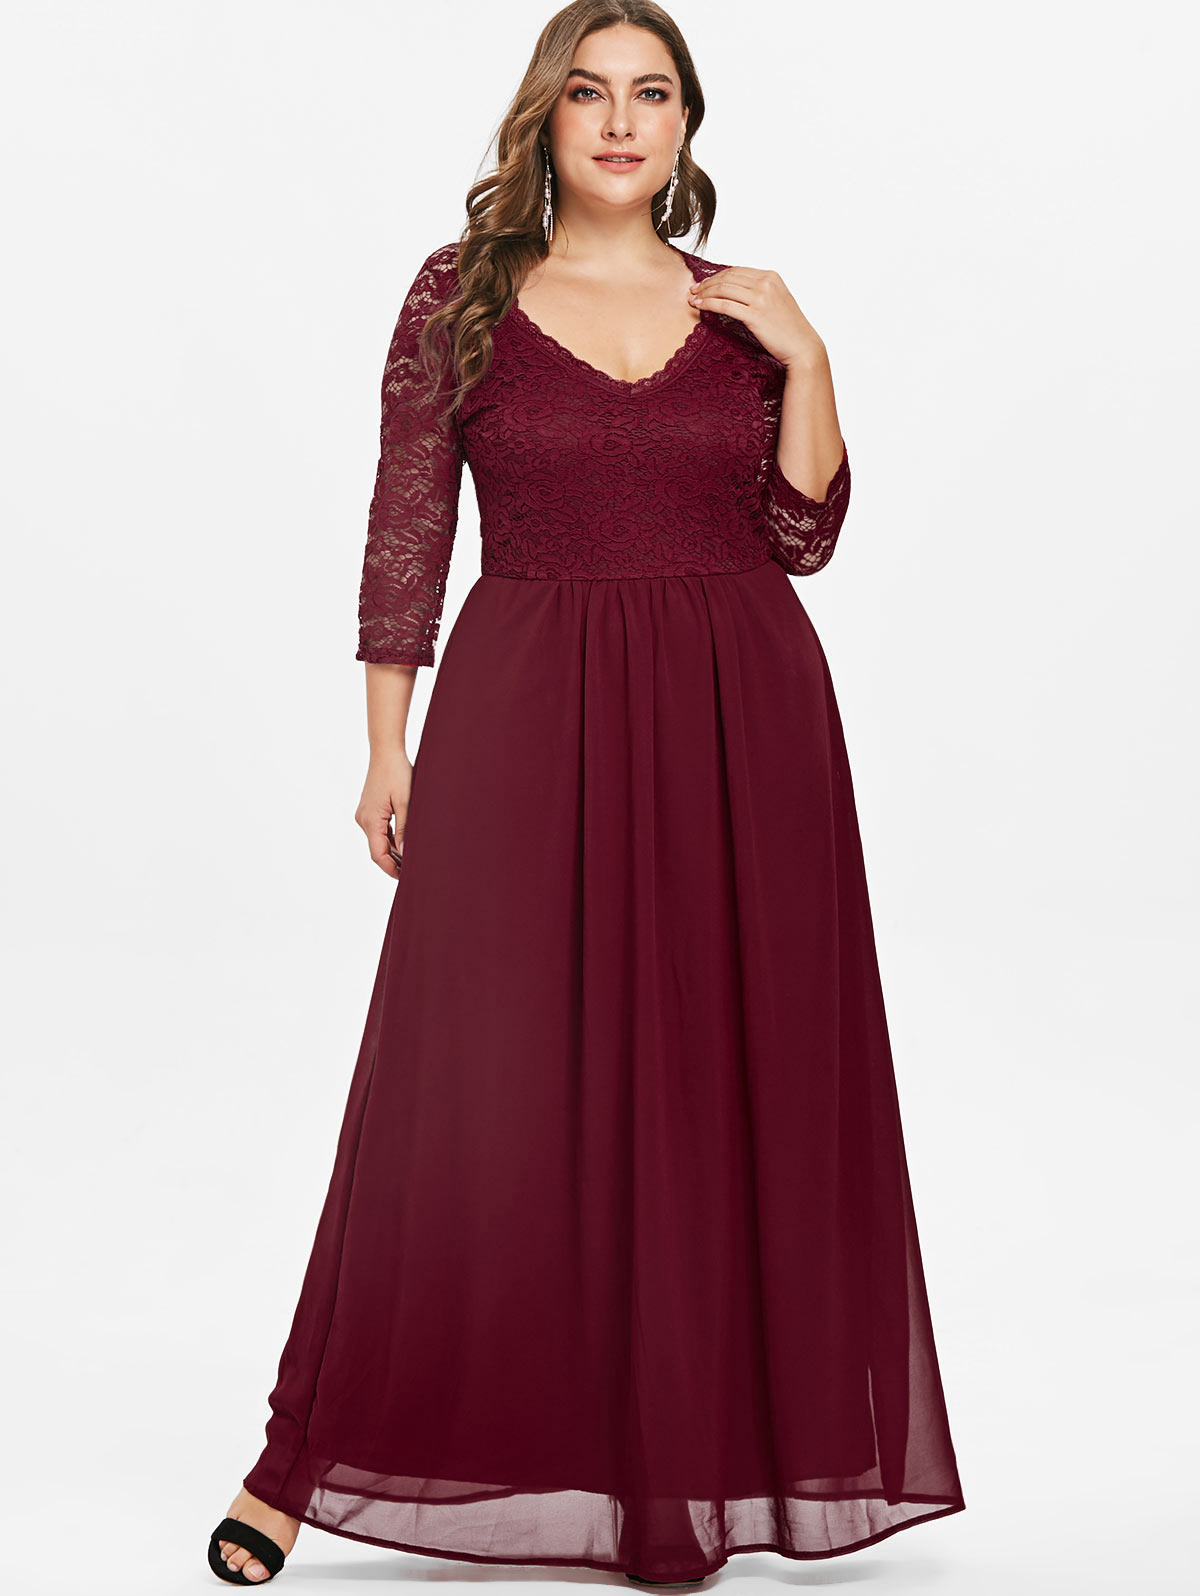 US $20.3 48% OFF|Wipalo Plus Size 5XL Plunging Neck Lace Panel Floor Length  Maxi Dress Elegant Three Quarter Sleeve Party Dress Ladies Vestidos-in ...